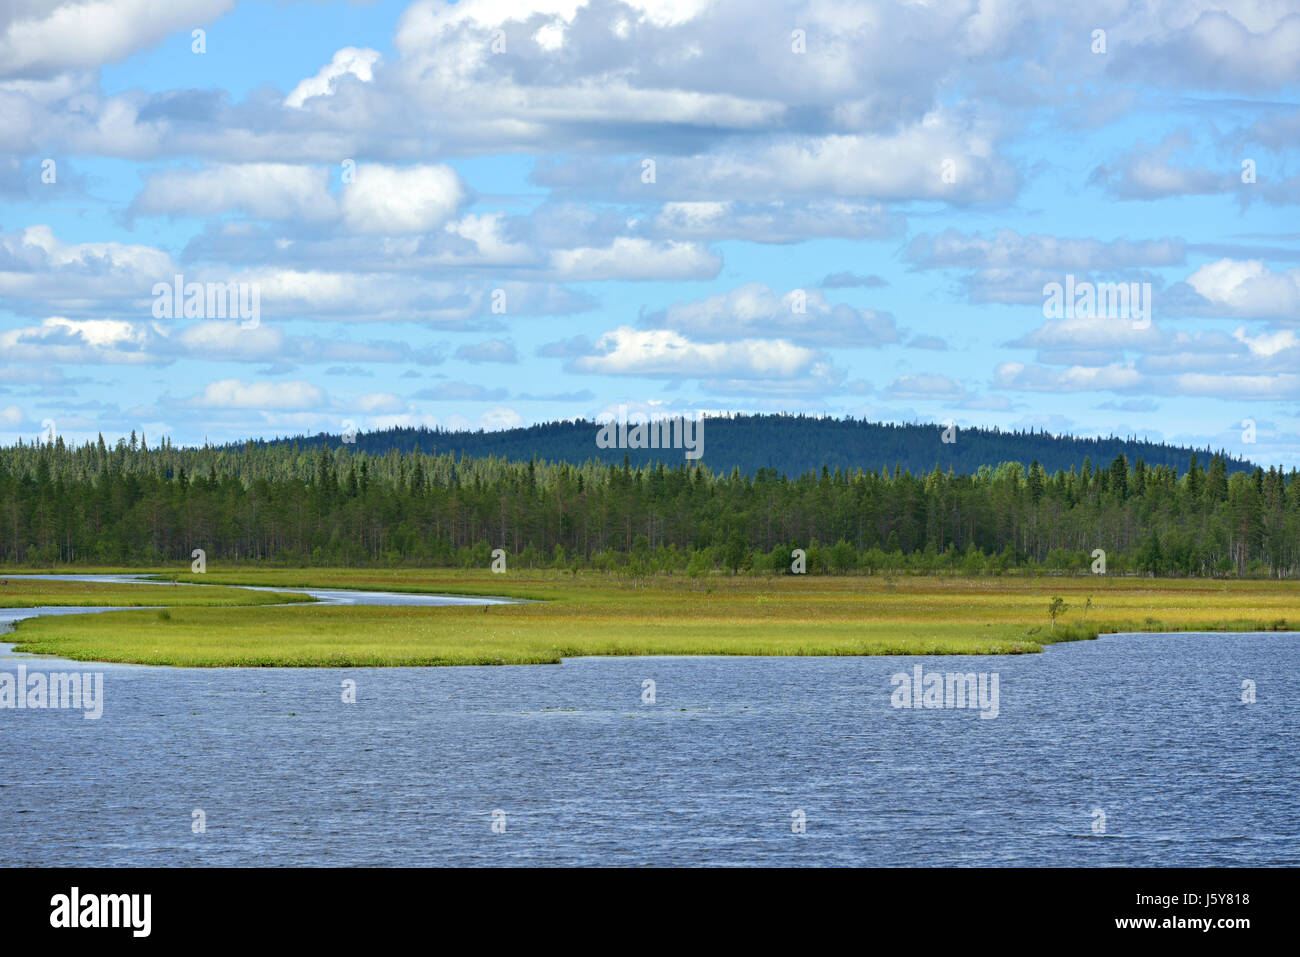 Northern landscape. River and marshy banks. Finnish Lapland - Stock Image